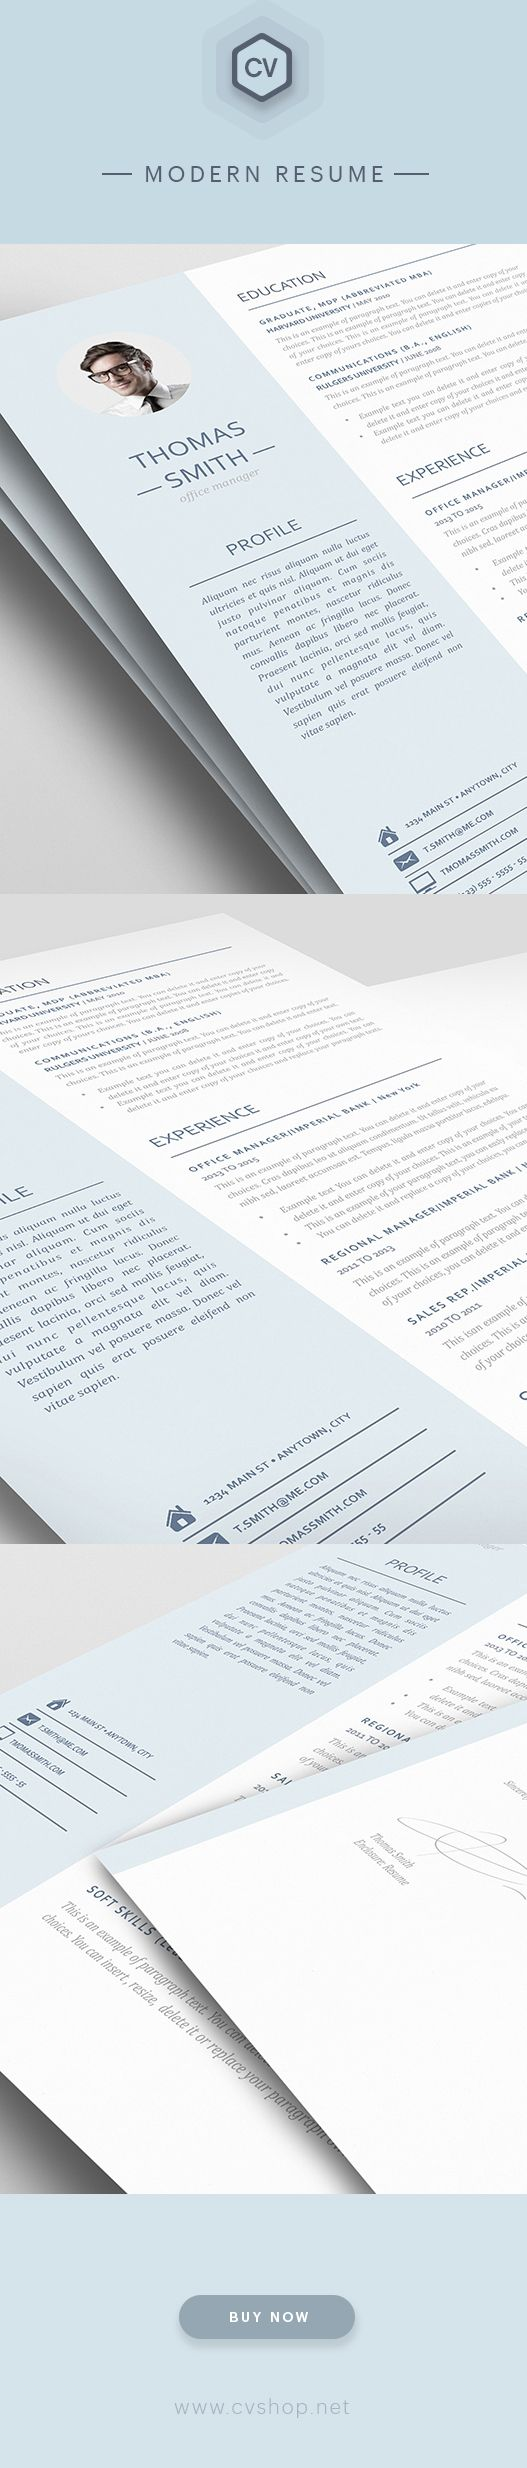 17 best images about ms word resume templates cover cvshop resume templates is the all in one solution for anyone looking to create a professional resume and cover letter ease post resume today